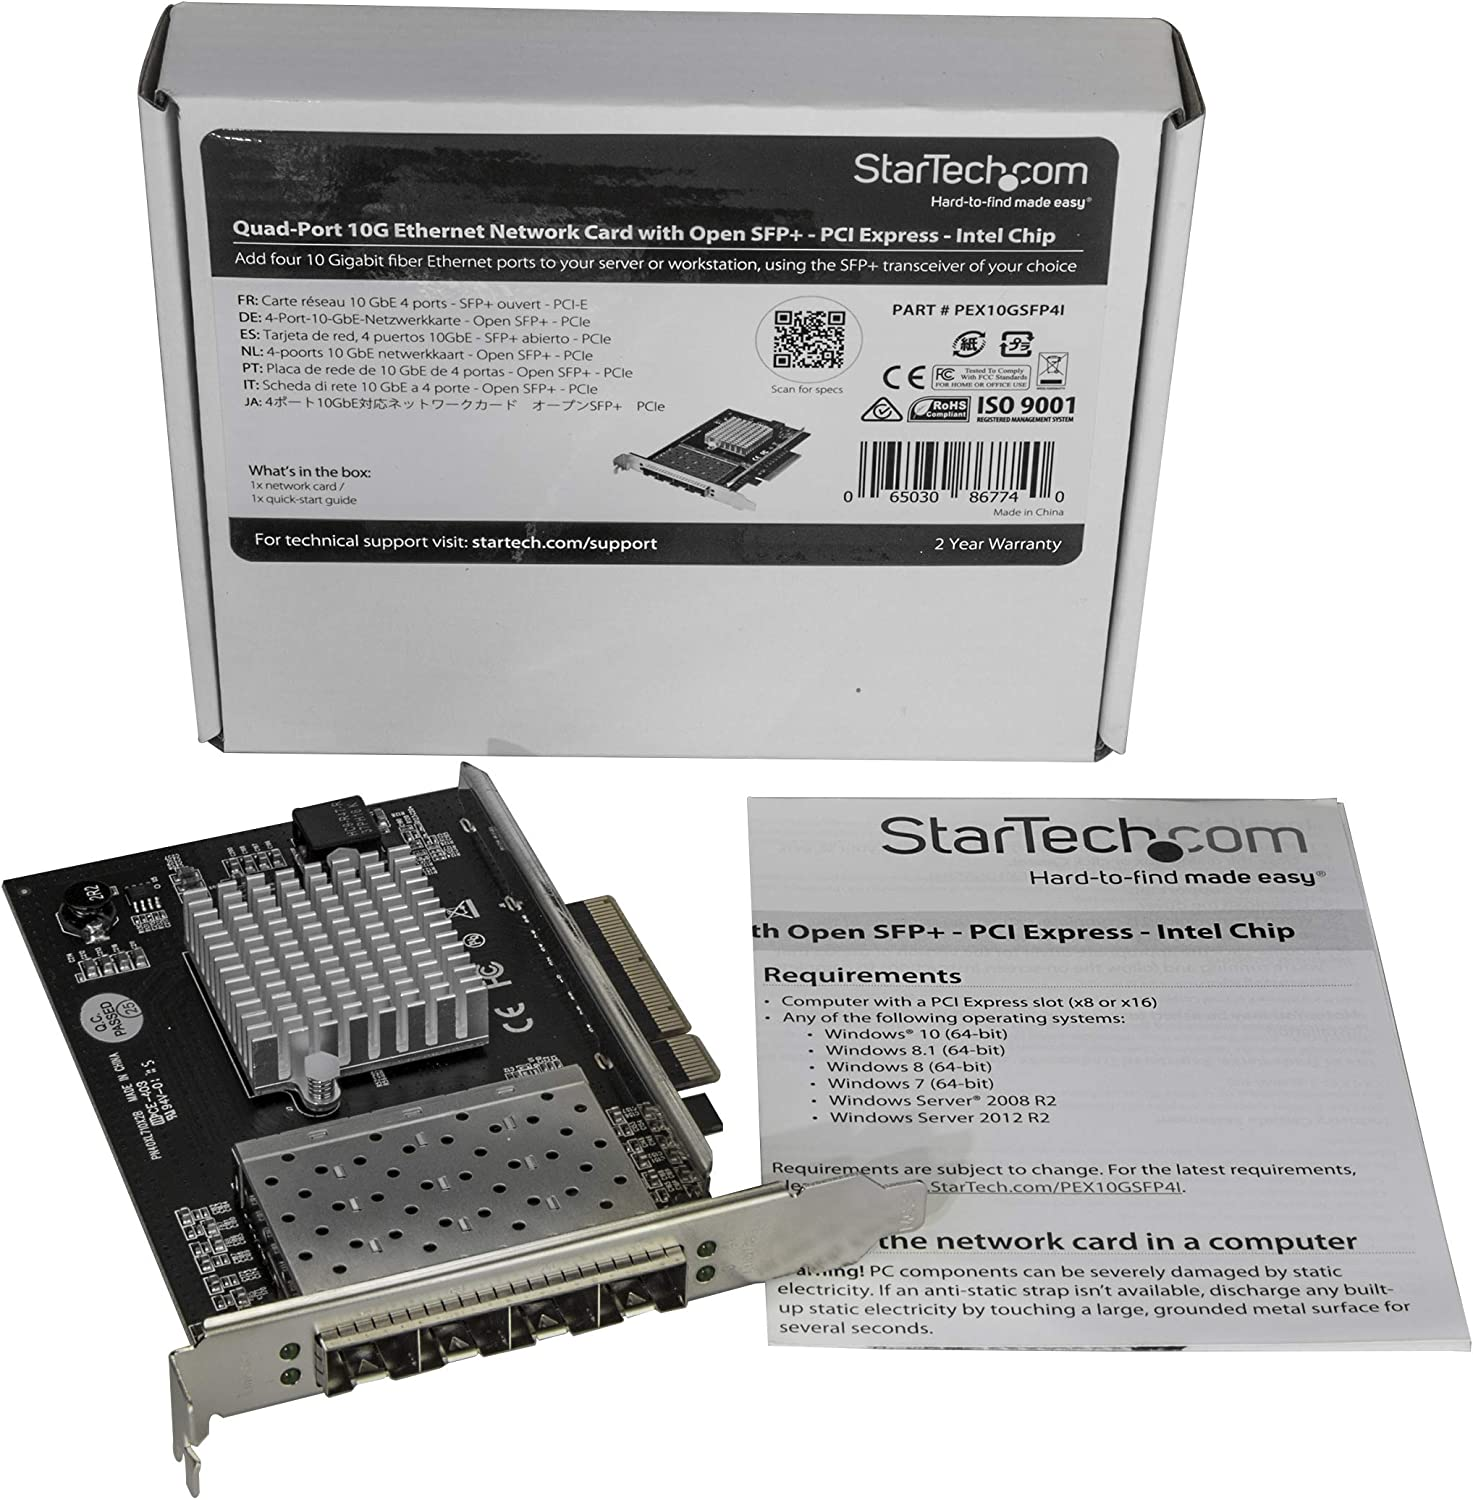 StarTech.com SFP+ Server Network Card - 4 Port Nic Card - Intel XL710 Chip - PCIe Netword Card - 10 Gigabit Ethernet Card (PEX10GSFP4I)